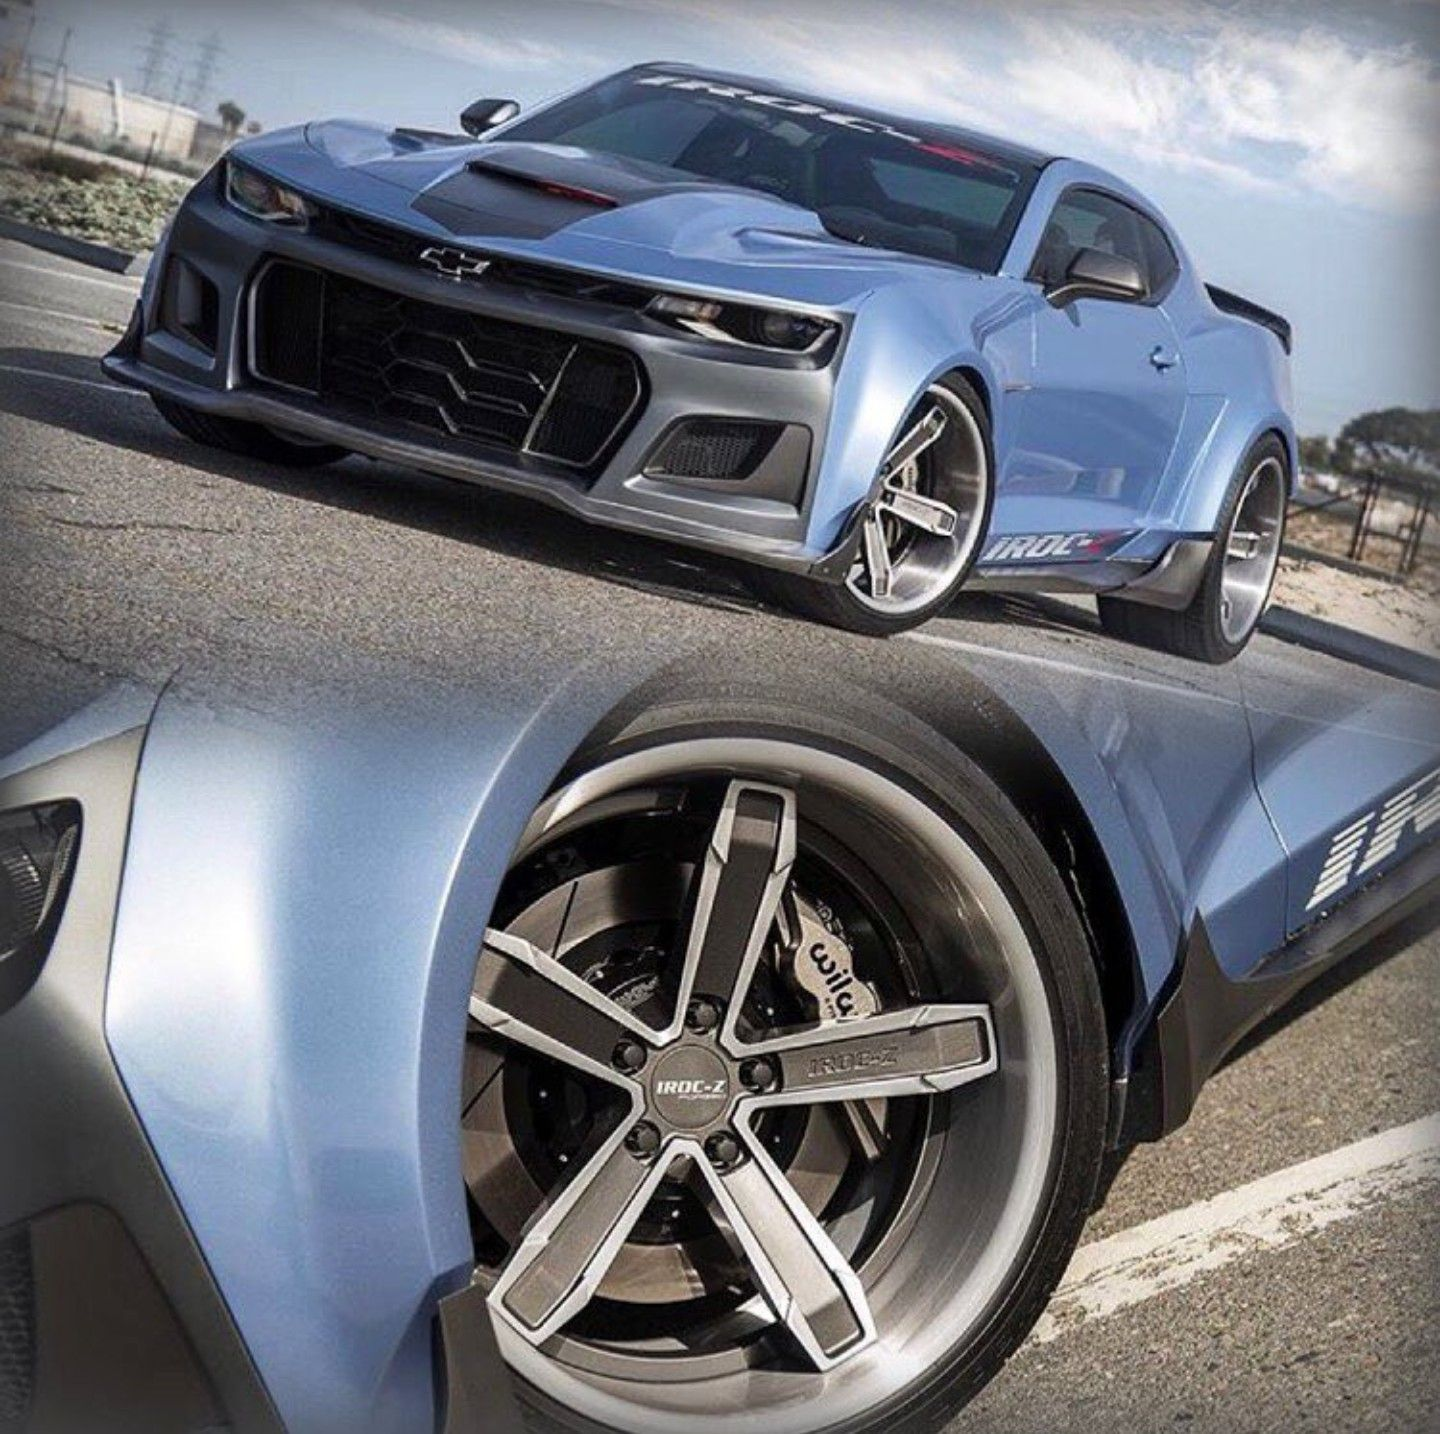 19 Unutterable Wheels Rims Pictures Ideas Car Wheels Modern Muscle Cars Classic Cars